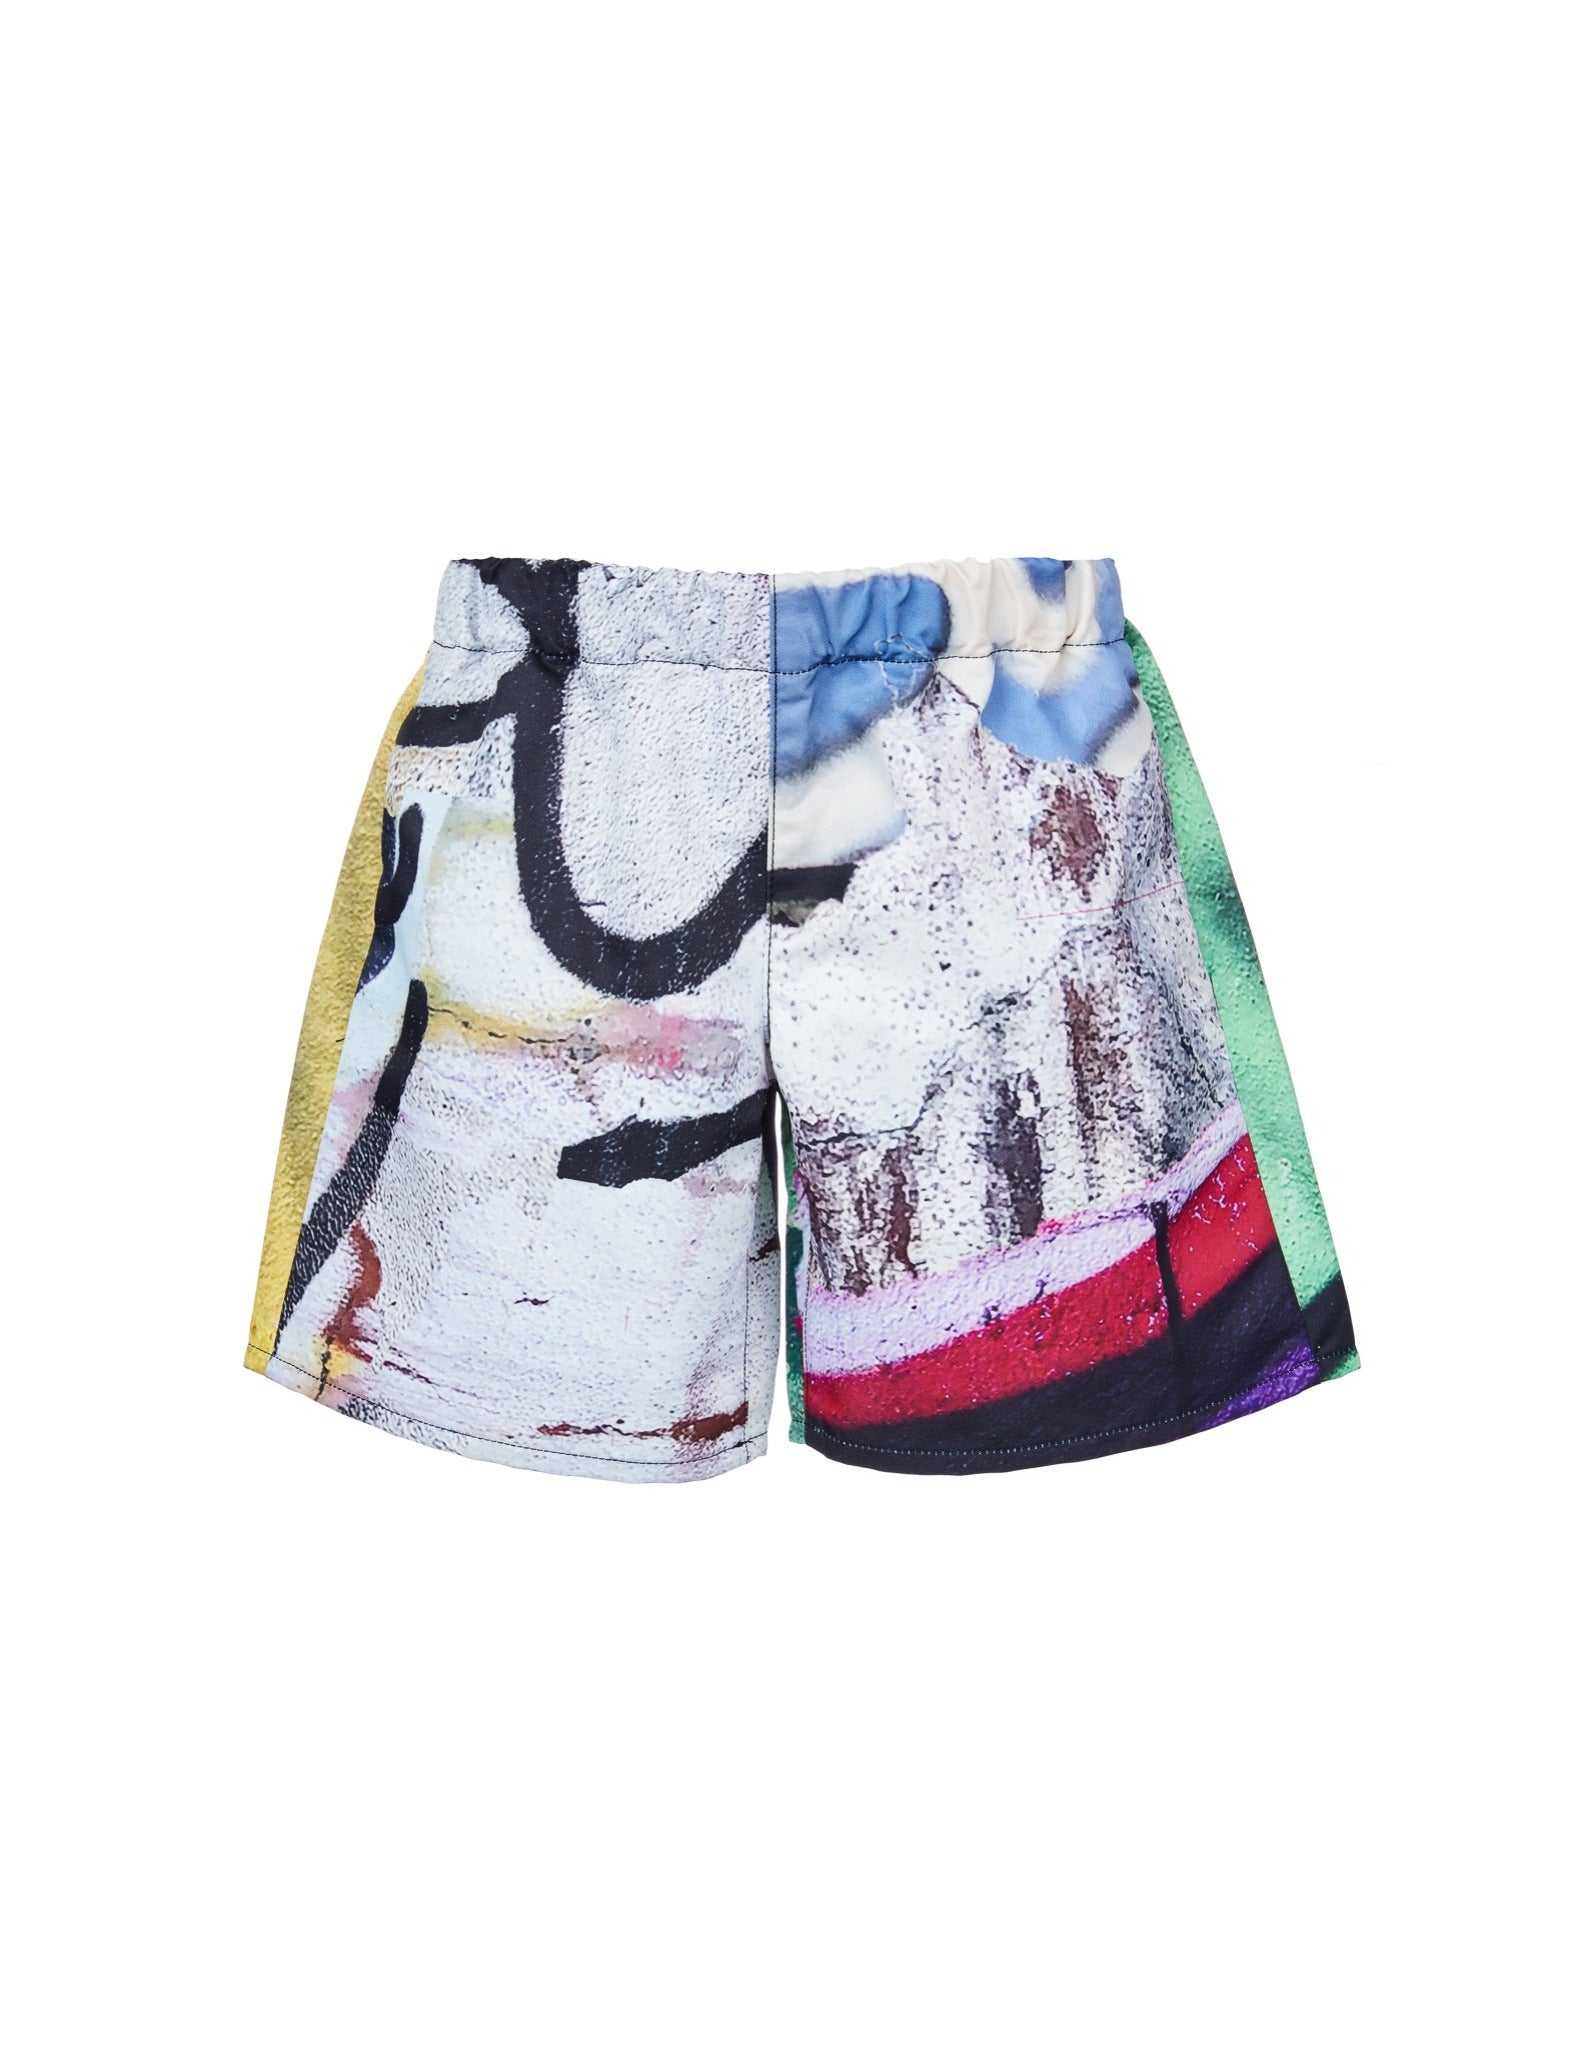 M'A KIDS CLASSIC SHORTS IN BRIGHT PRINT